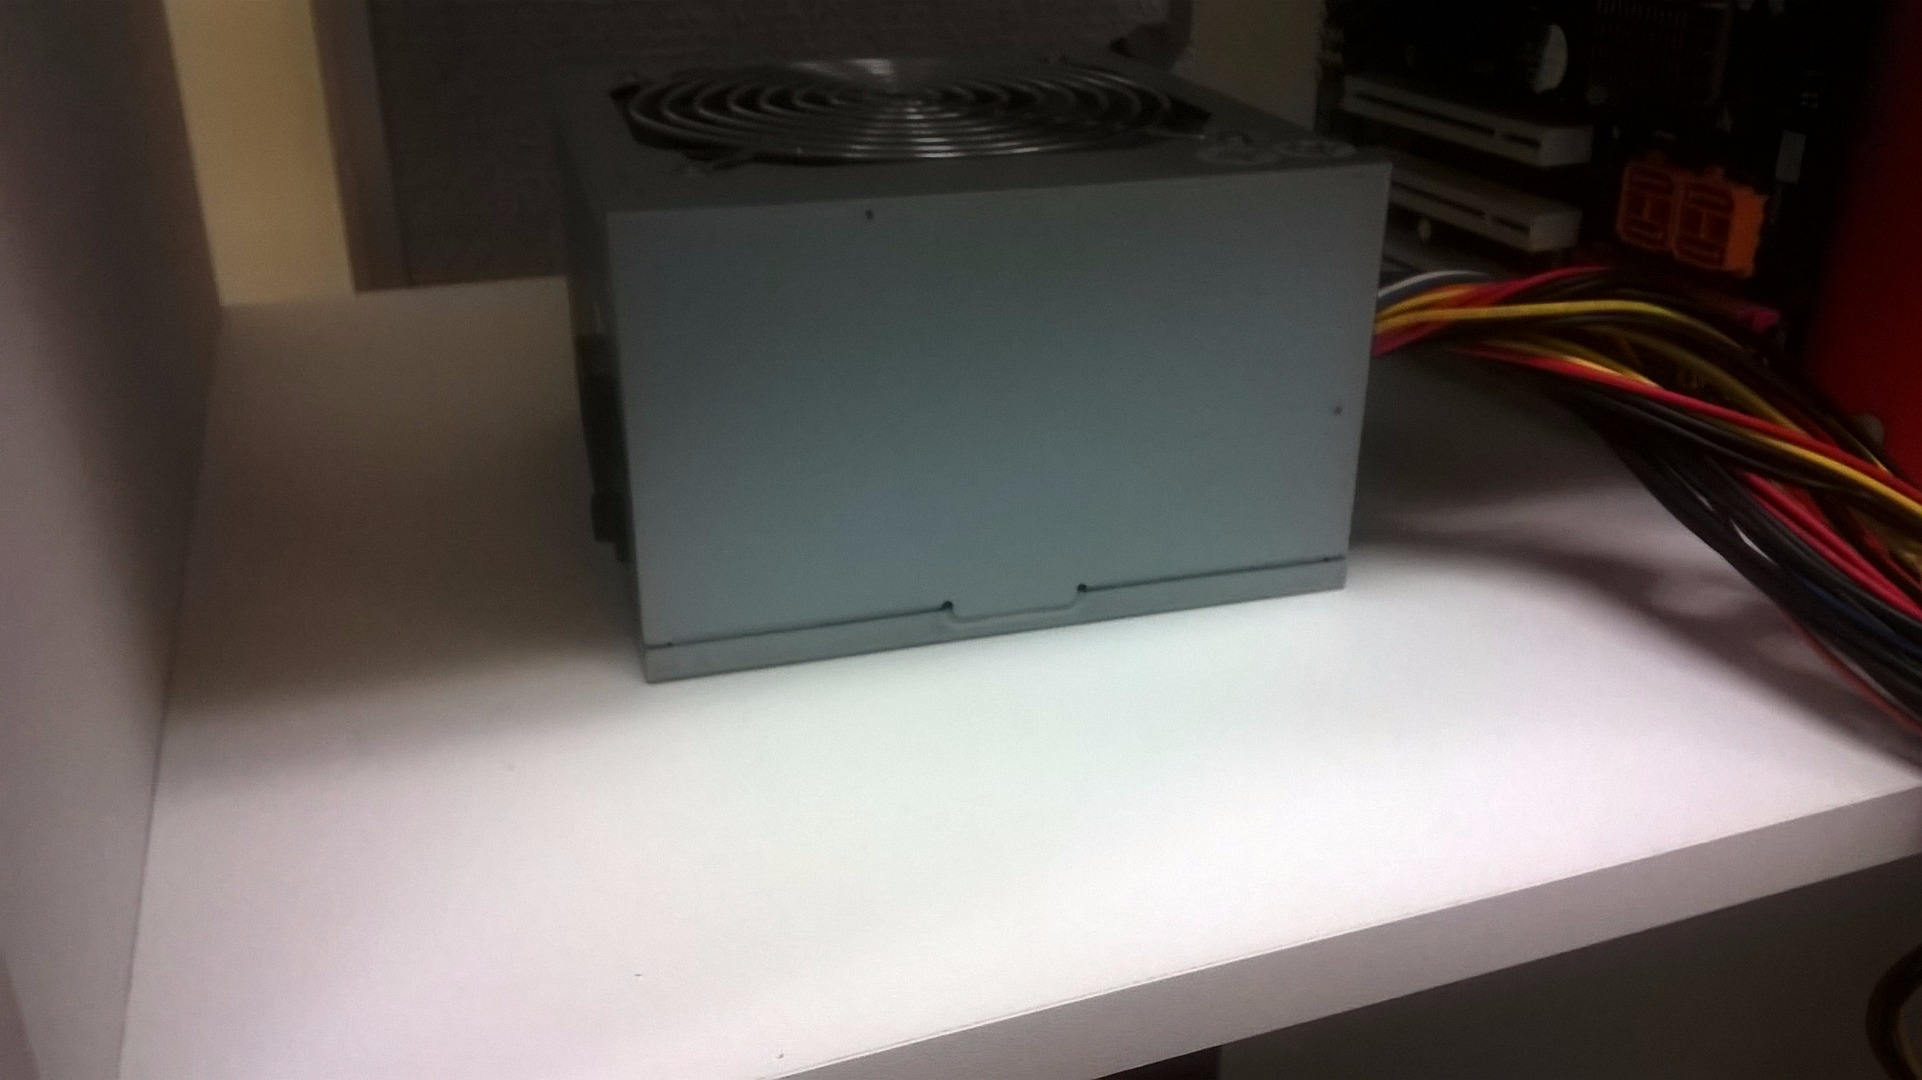 Picture of Mounting the Power Supply and Harddrive